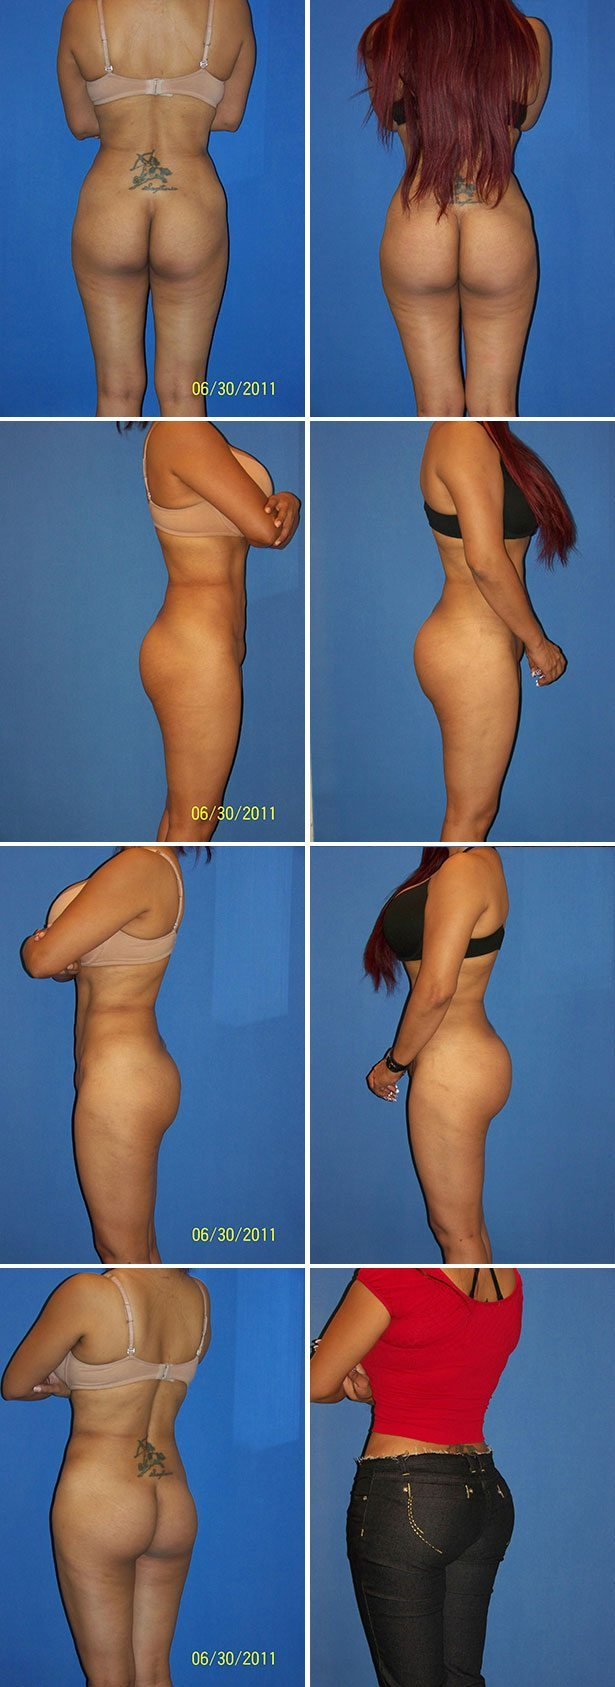 Butt Implants Before & After Photos - Dr. G Cosmetic Surgery